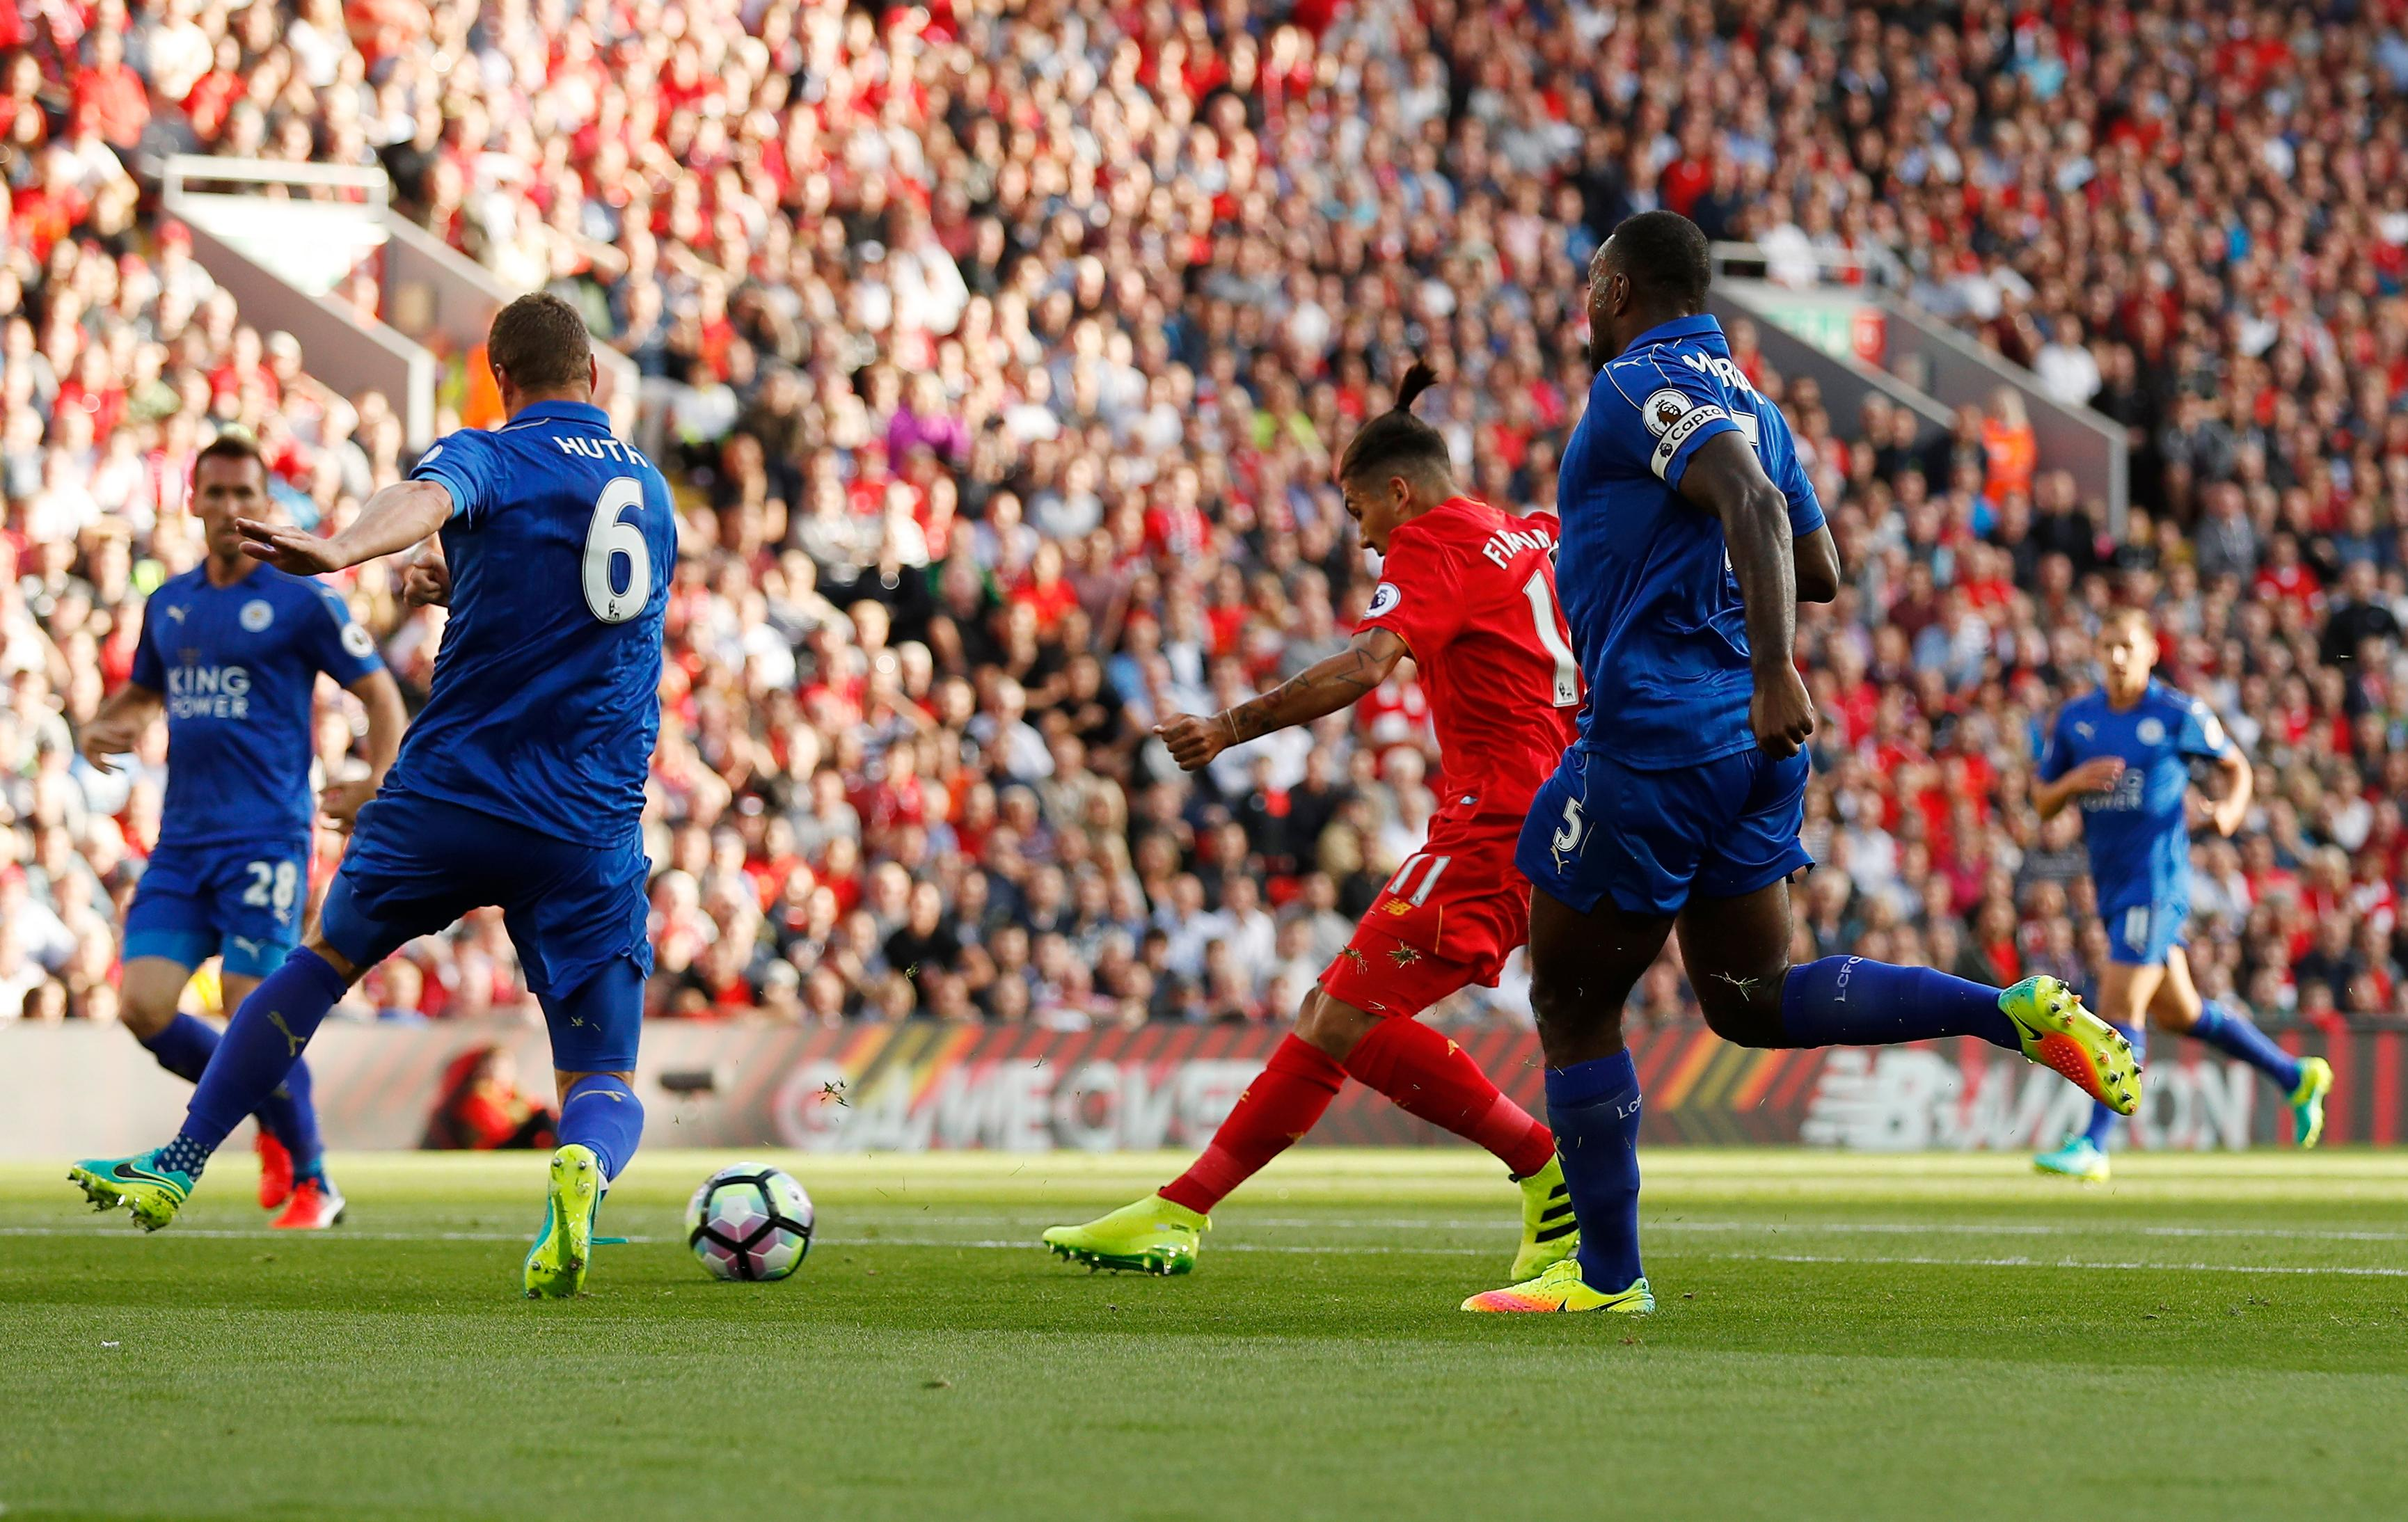 Compare and buy premier league tickets for brentford fc vs liverpool fc on saturday, september 25th, 2021 at griffin park in brentford. Liverpool put four past Leicester